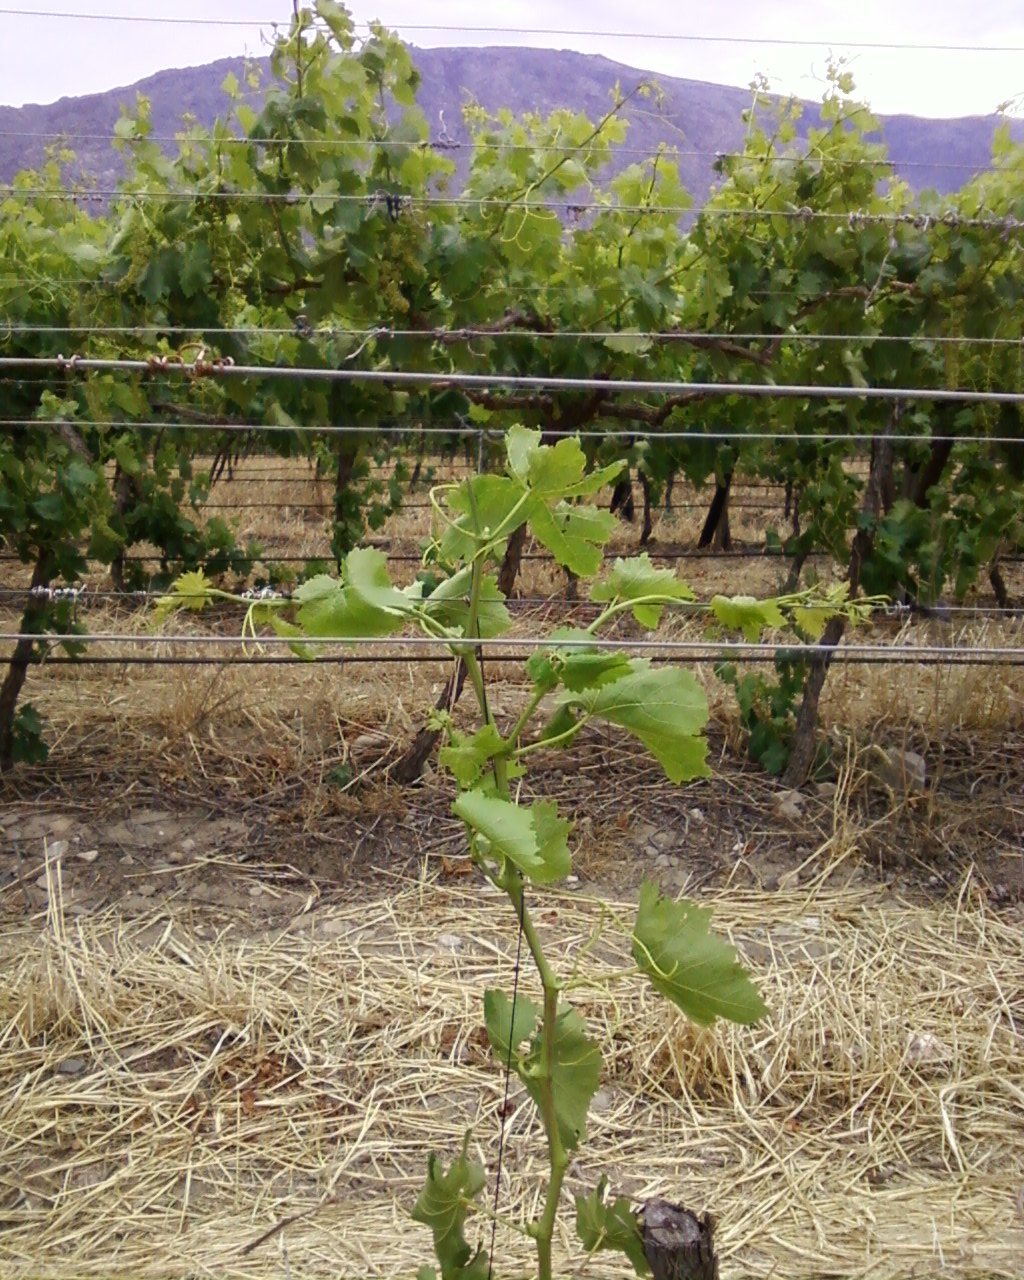 Growing Grapes: The First Year's Goal